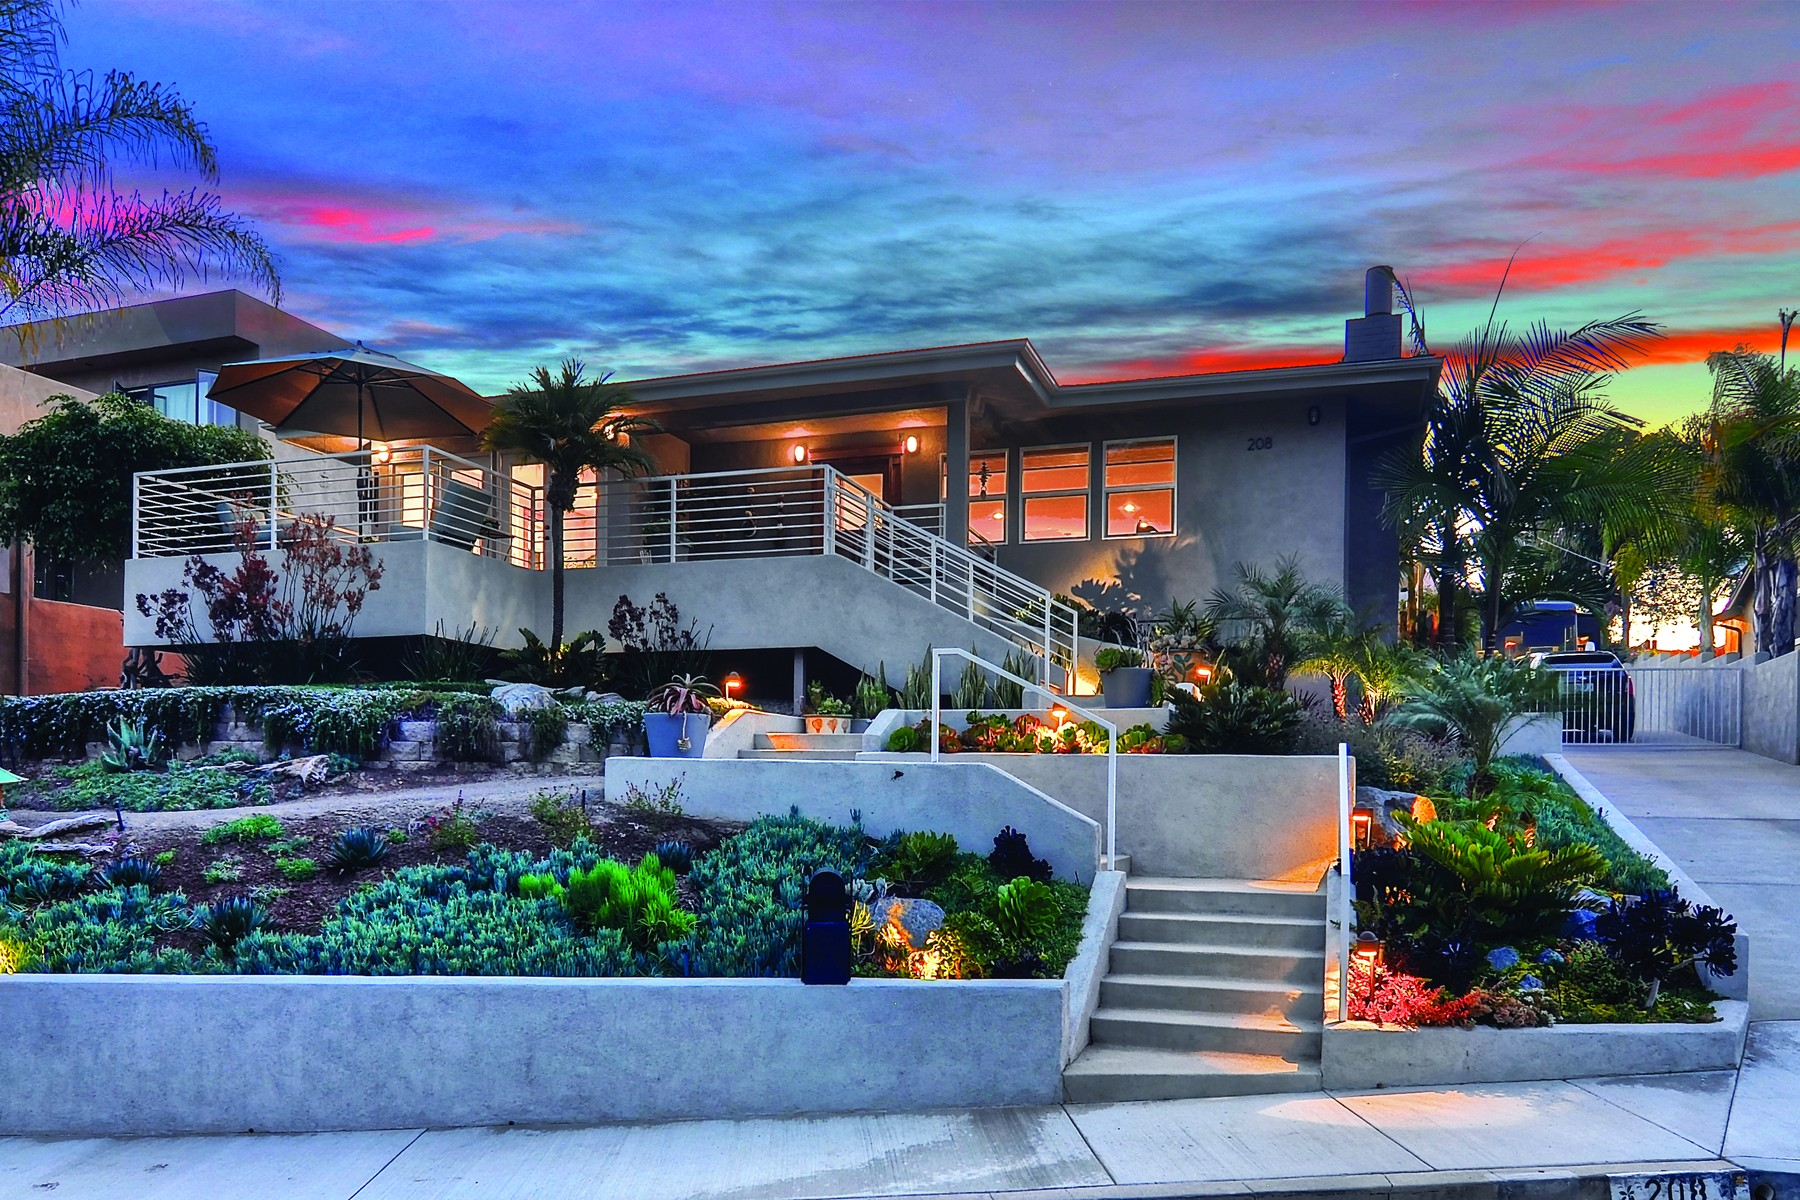 Single Family Home for Sale at San Clemente 208 W. Avenida Alessandro San Clemente, California 92672 United States